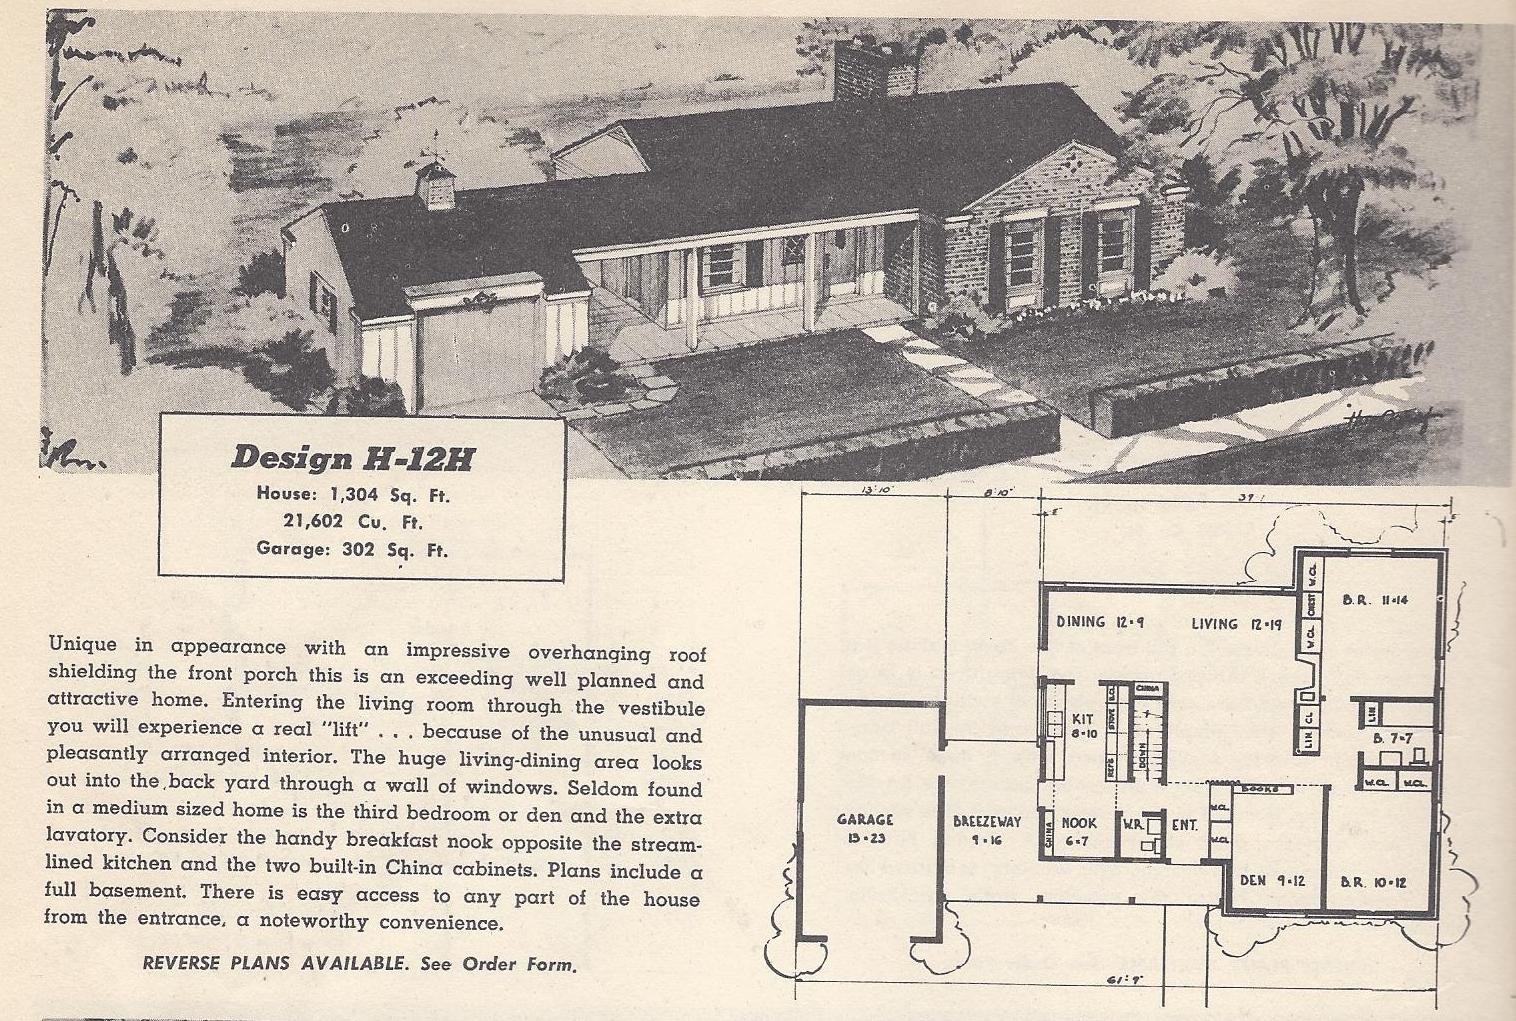 1970s bi level house plans vintage ranch house plans for 1970s ranch house plans